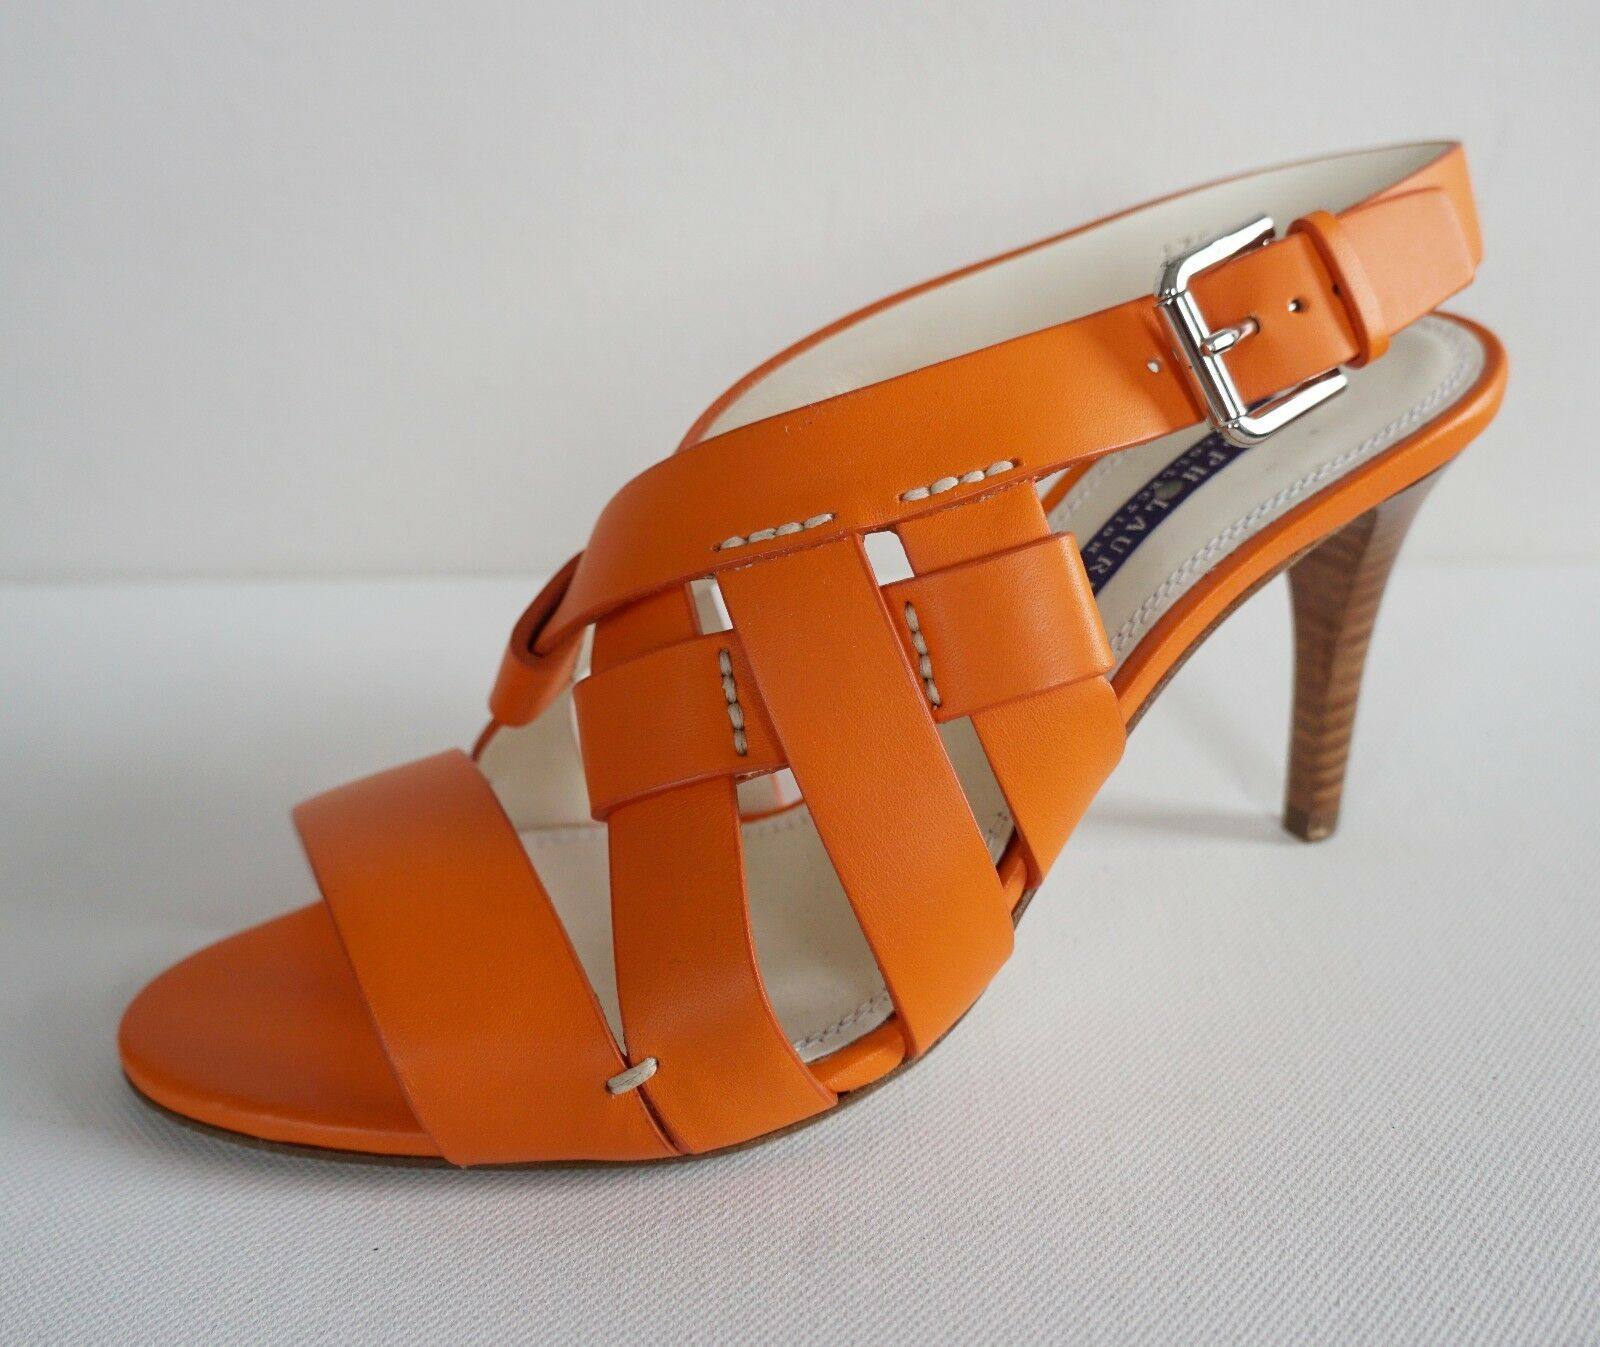 595 RALPH COLLECTION LAUREN COLLECTION RALPH Orange Leather Strappy Heel Sandals schuhe US-9.5B 45cefe